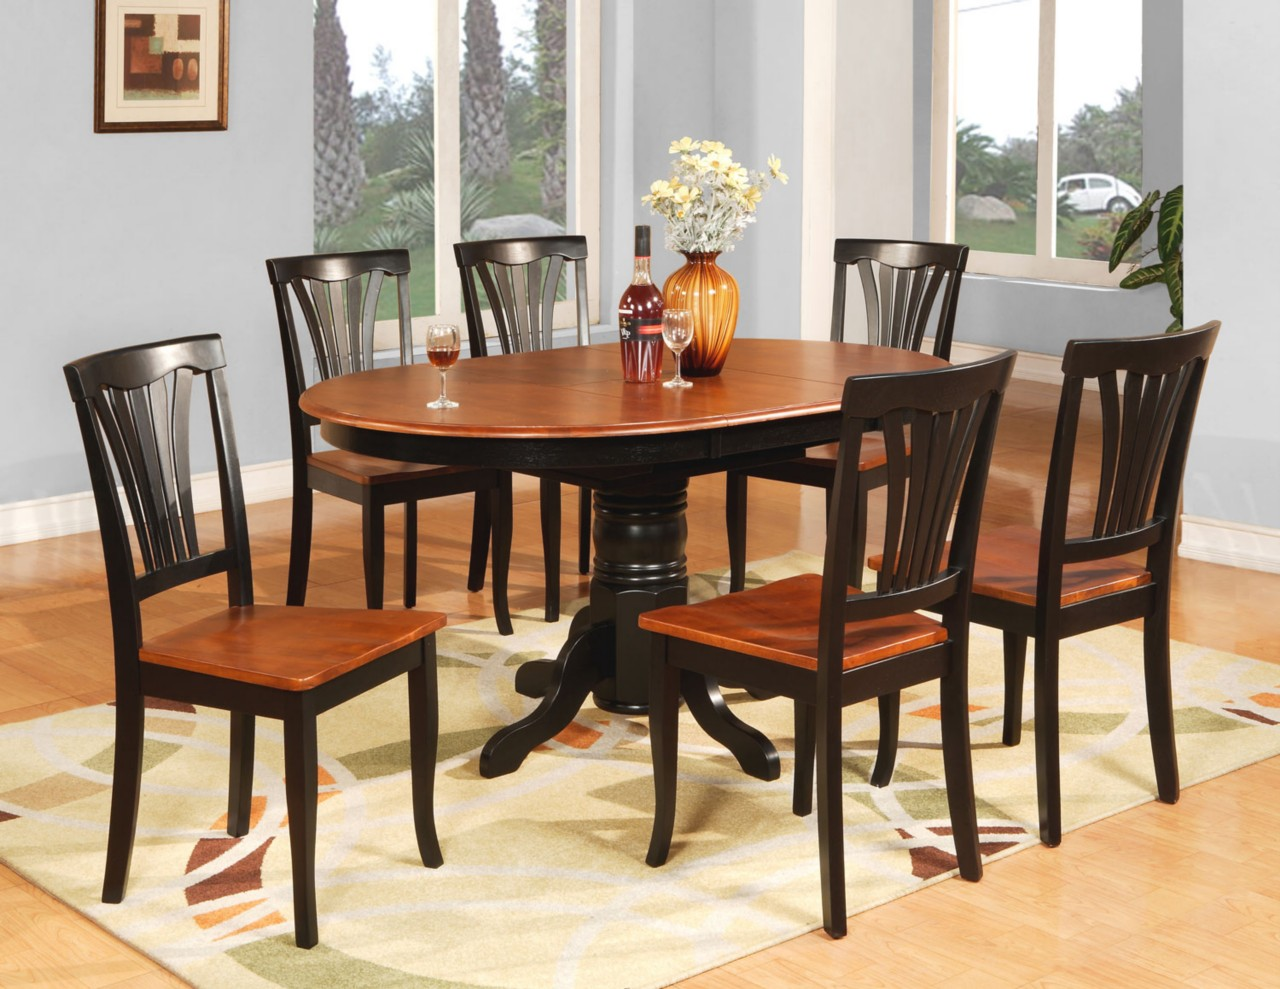 7 pc oval dinette kitchen dining room table 6 chairs ebay for Dining room table for 2